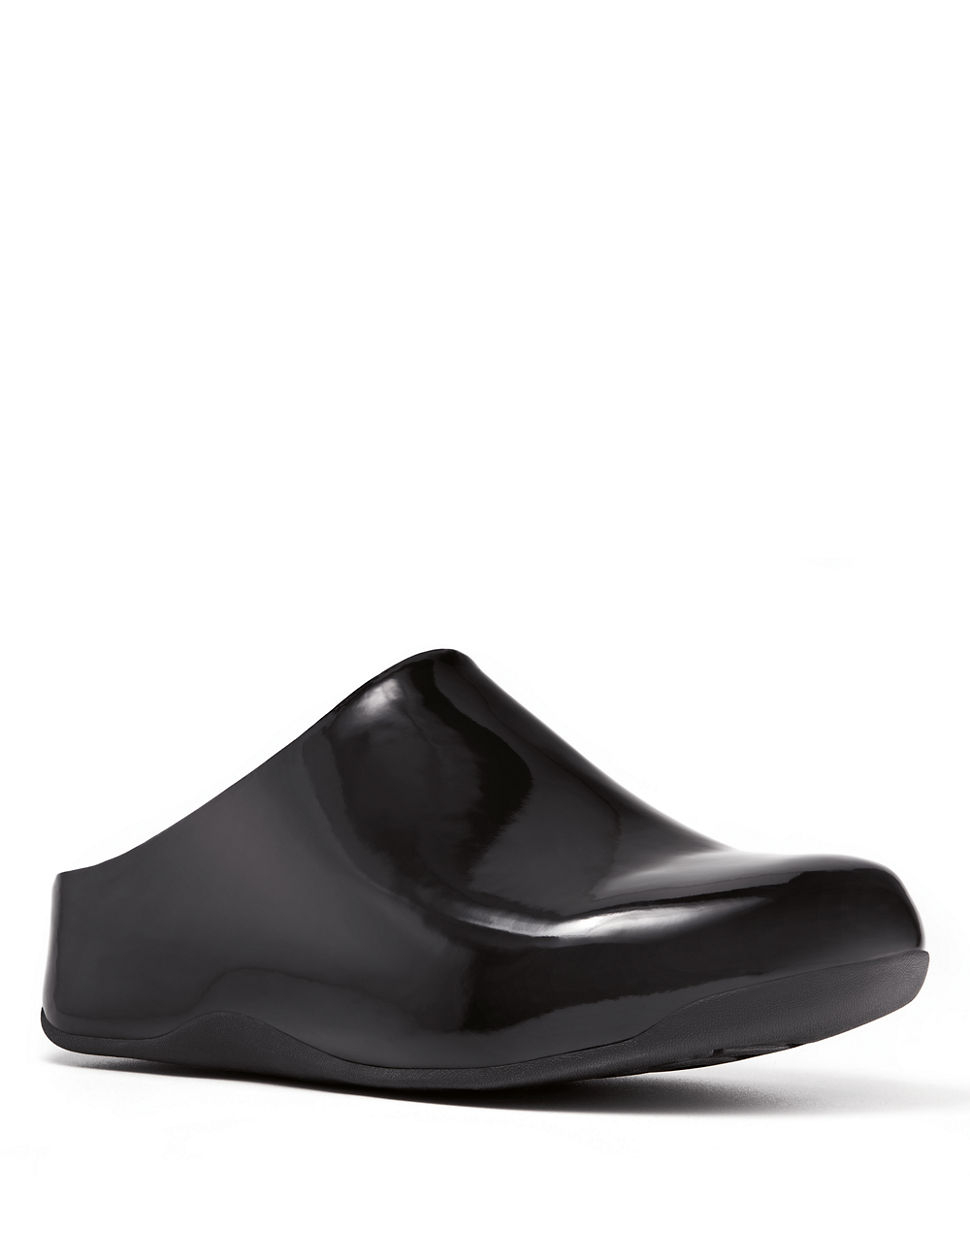 16b97838c Fitflop Shuv Leather Black